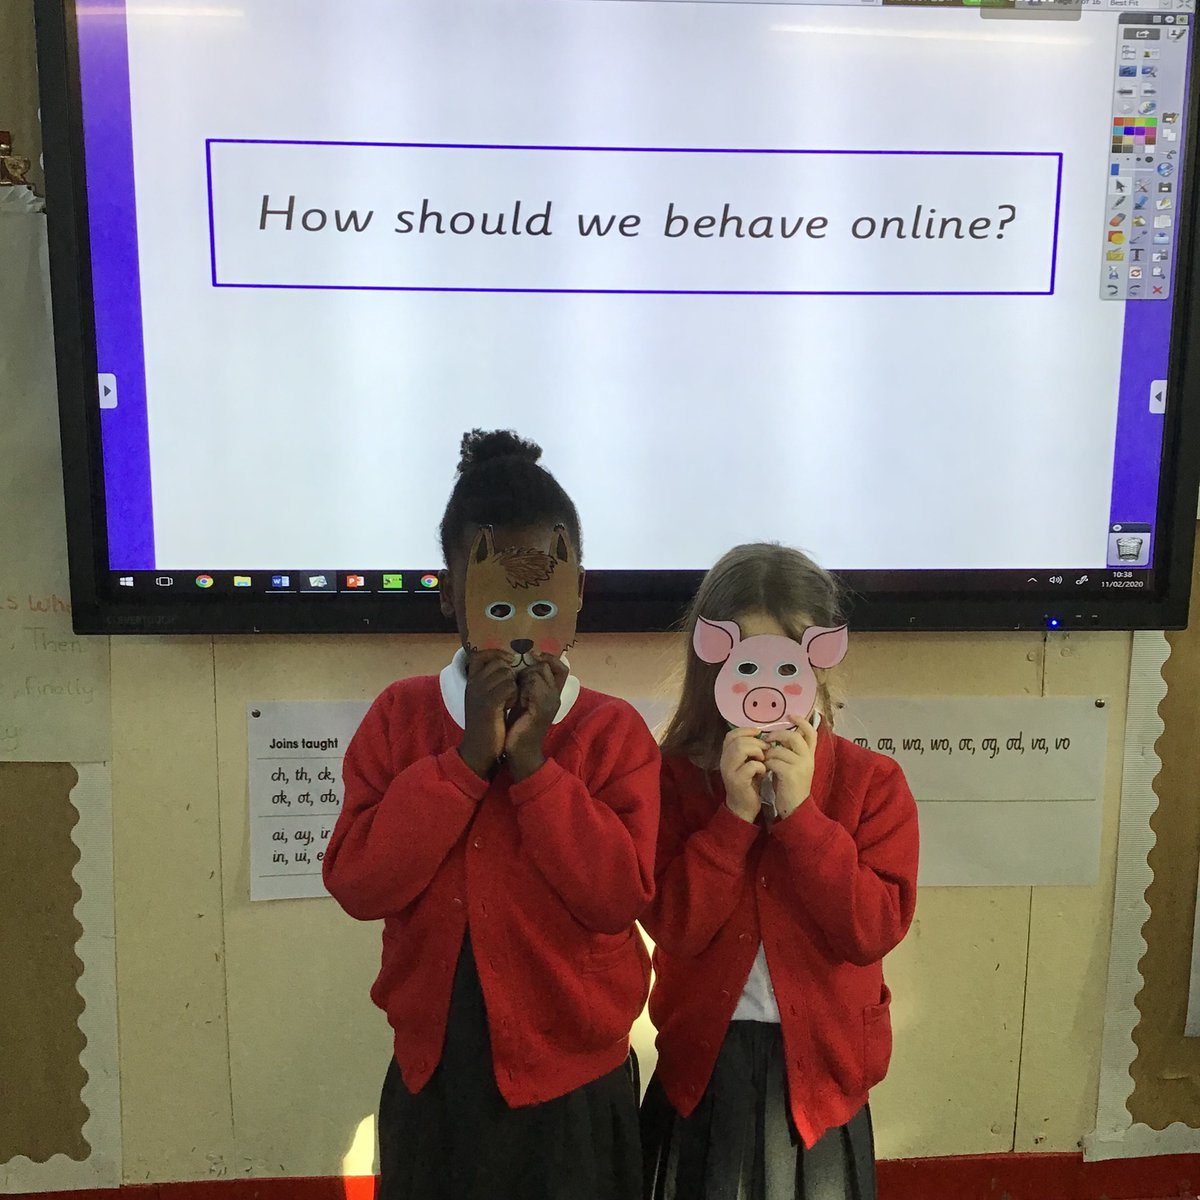 'How to stay safe on the internet' Using masks we were able to see that an identity of a person can be hidden and that if you say hurtful things to people online you can not see what effect you are having on their emotions. @NorthManorAcad #internetsafetyday https://t.co/6TNTYzwXiM